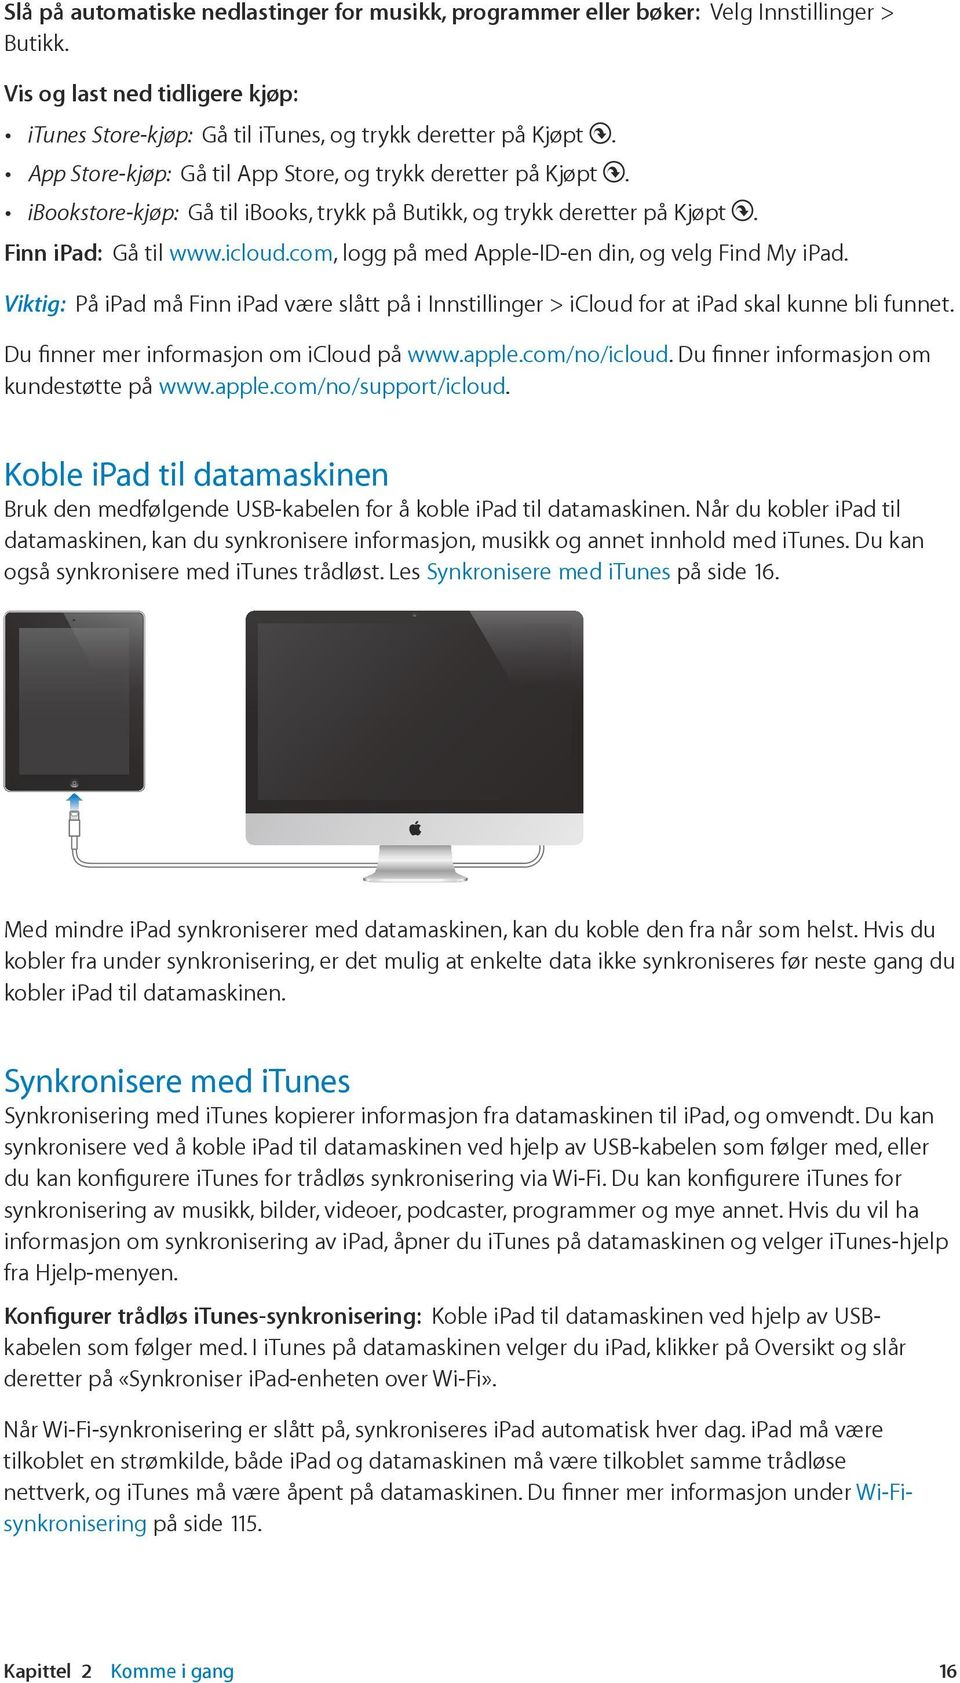 aktivere ipad med apple id